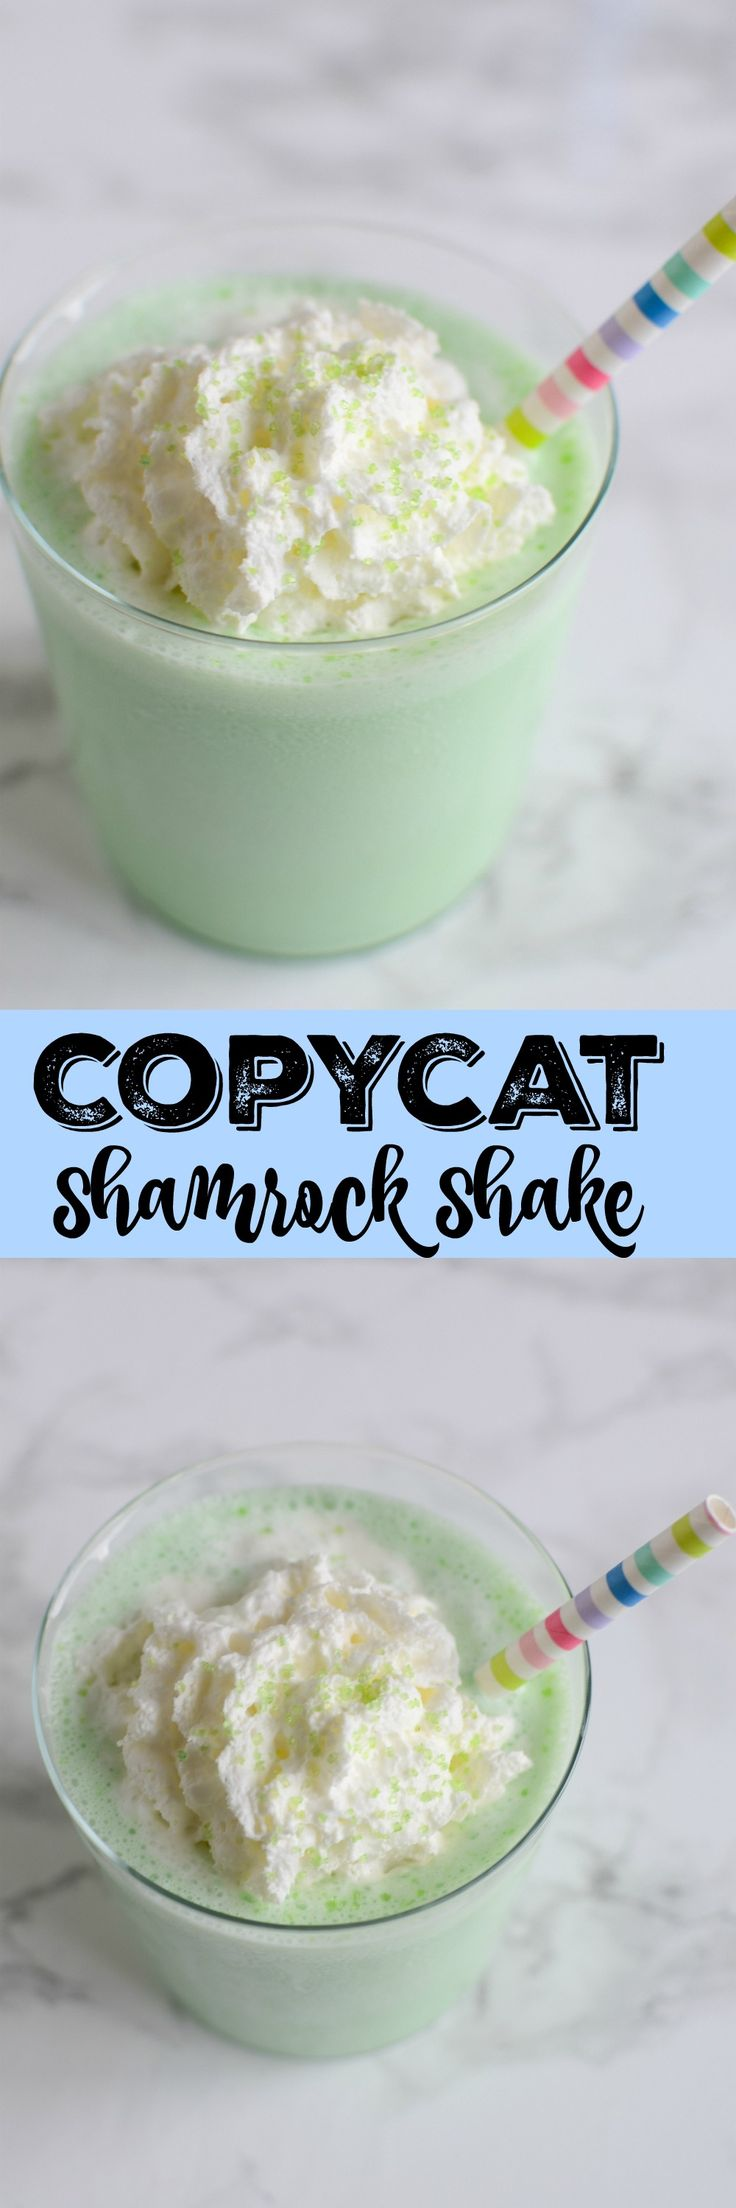 Shamrock Shake - McDonald's copycat recipe! This tastes just like the original! So good!